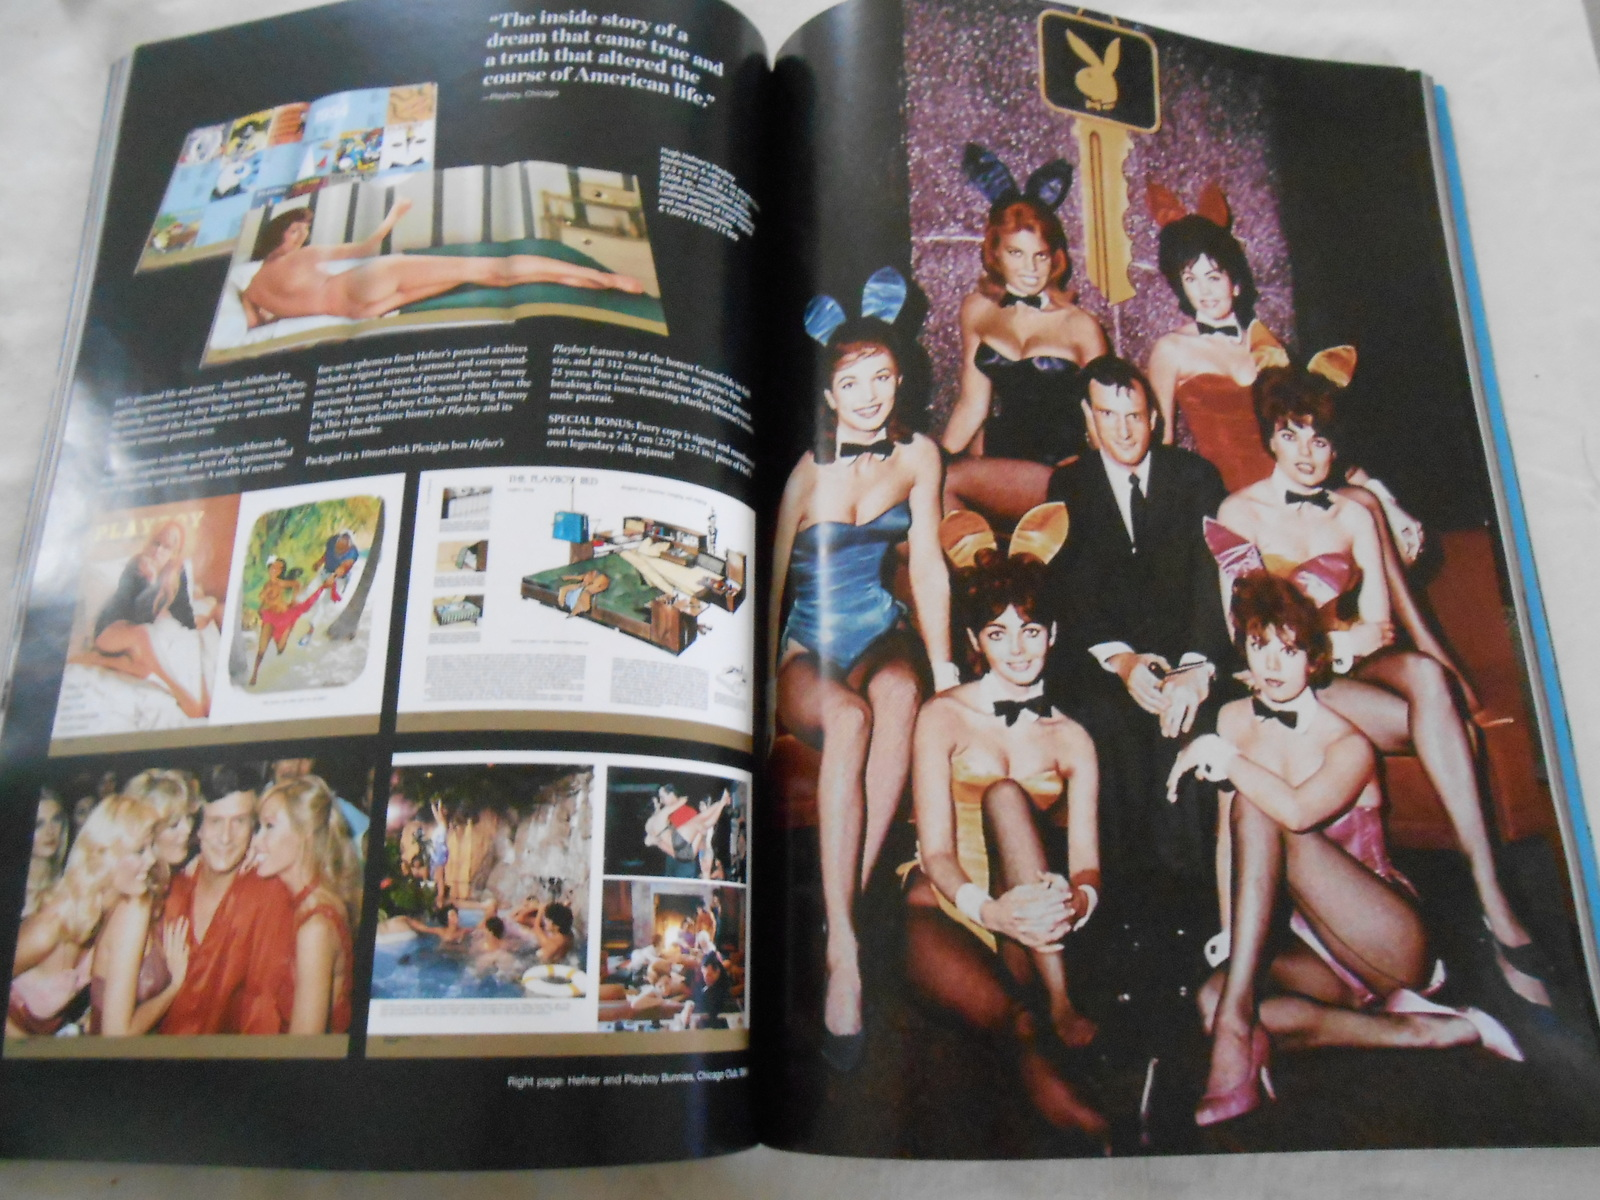 The Erotic Taschen Catalog from 2009/2010-Hot Stuff!